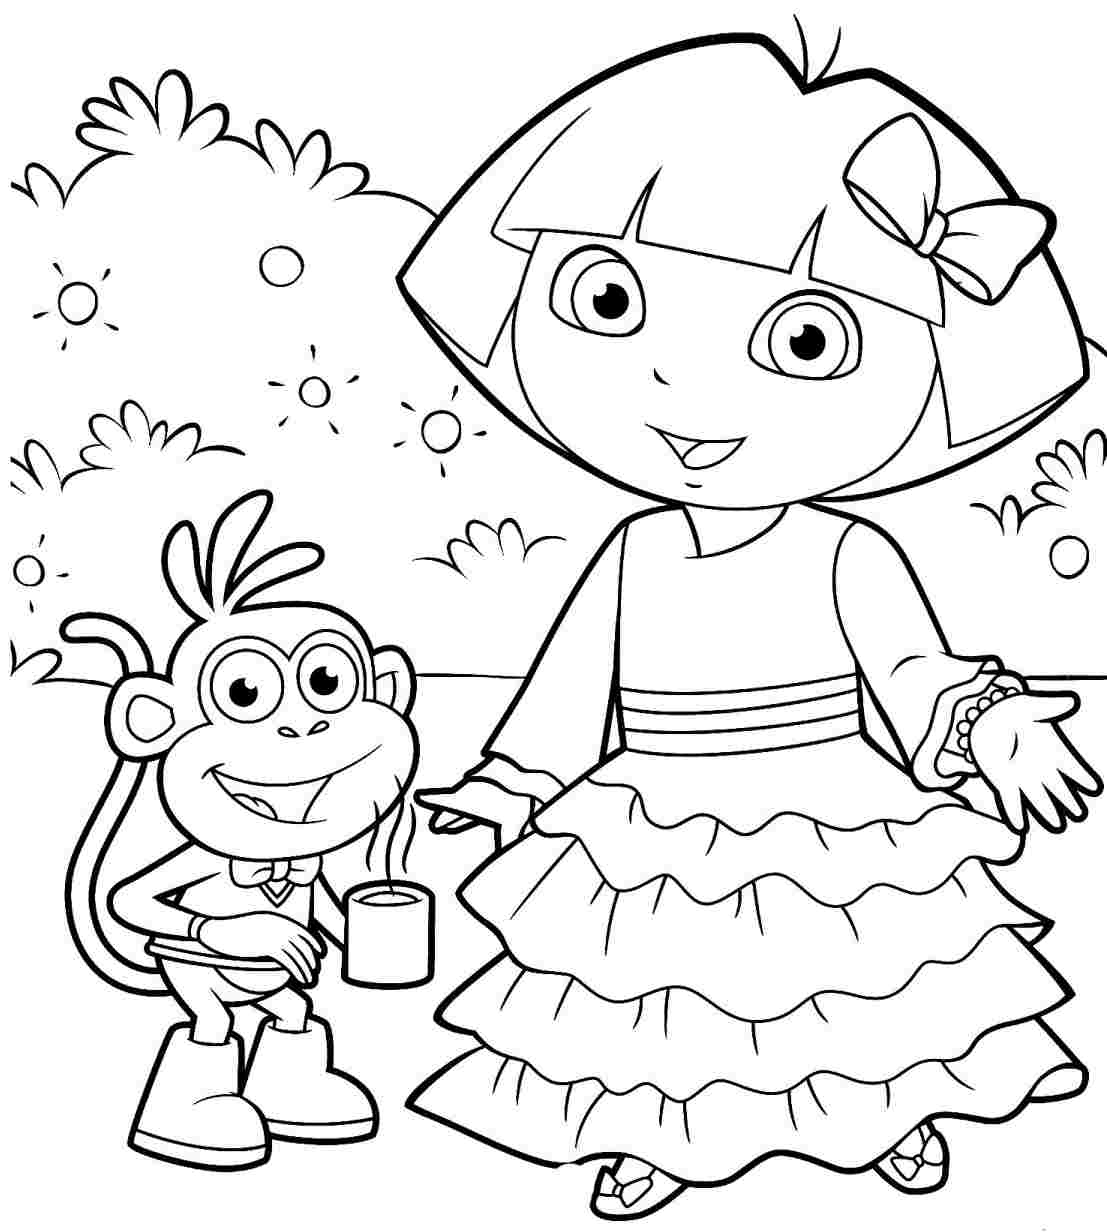 dora free coloring pages dora colouring pages to print at getcoloringscom free dora coloring pages free